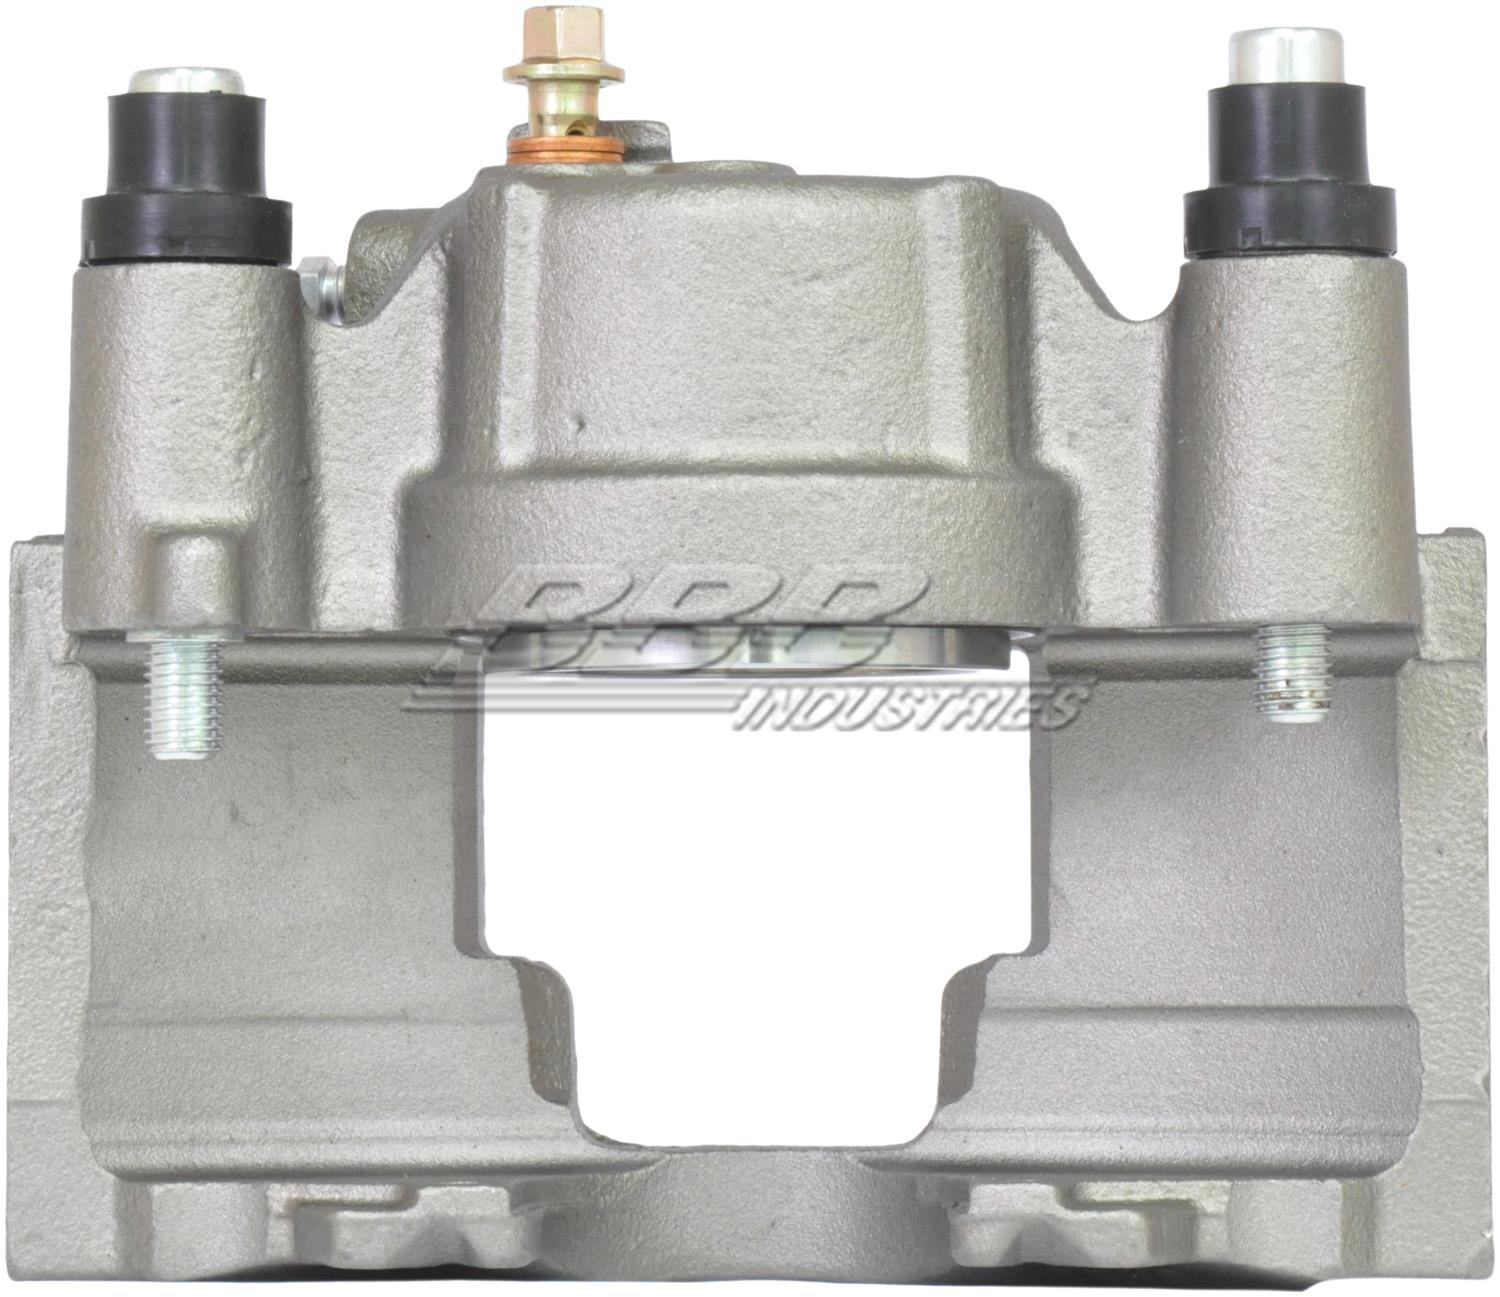 BBB INDUSTRIES - Reman Caliper w/ Installation Hardware - BBA 97-17263A